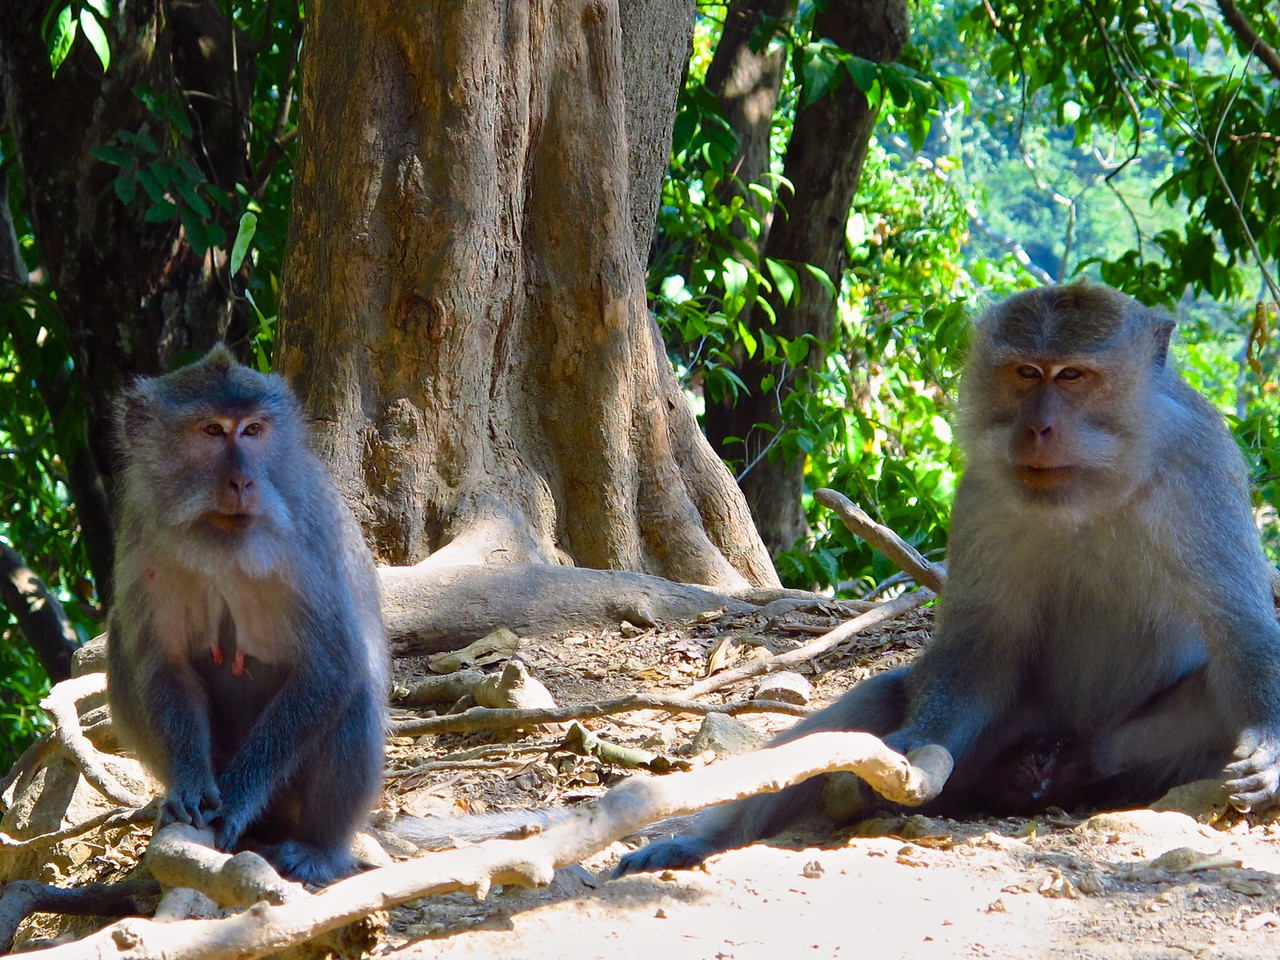 On the north part of Lombok is Baun Pusuk, the monkey forest.  Friendly monkeys line the forest and road side.